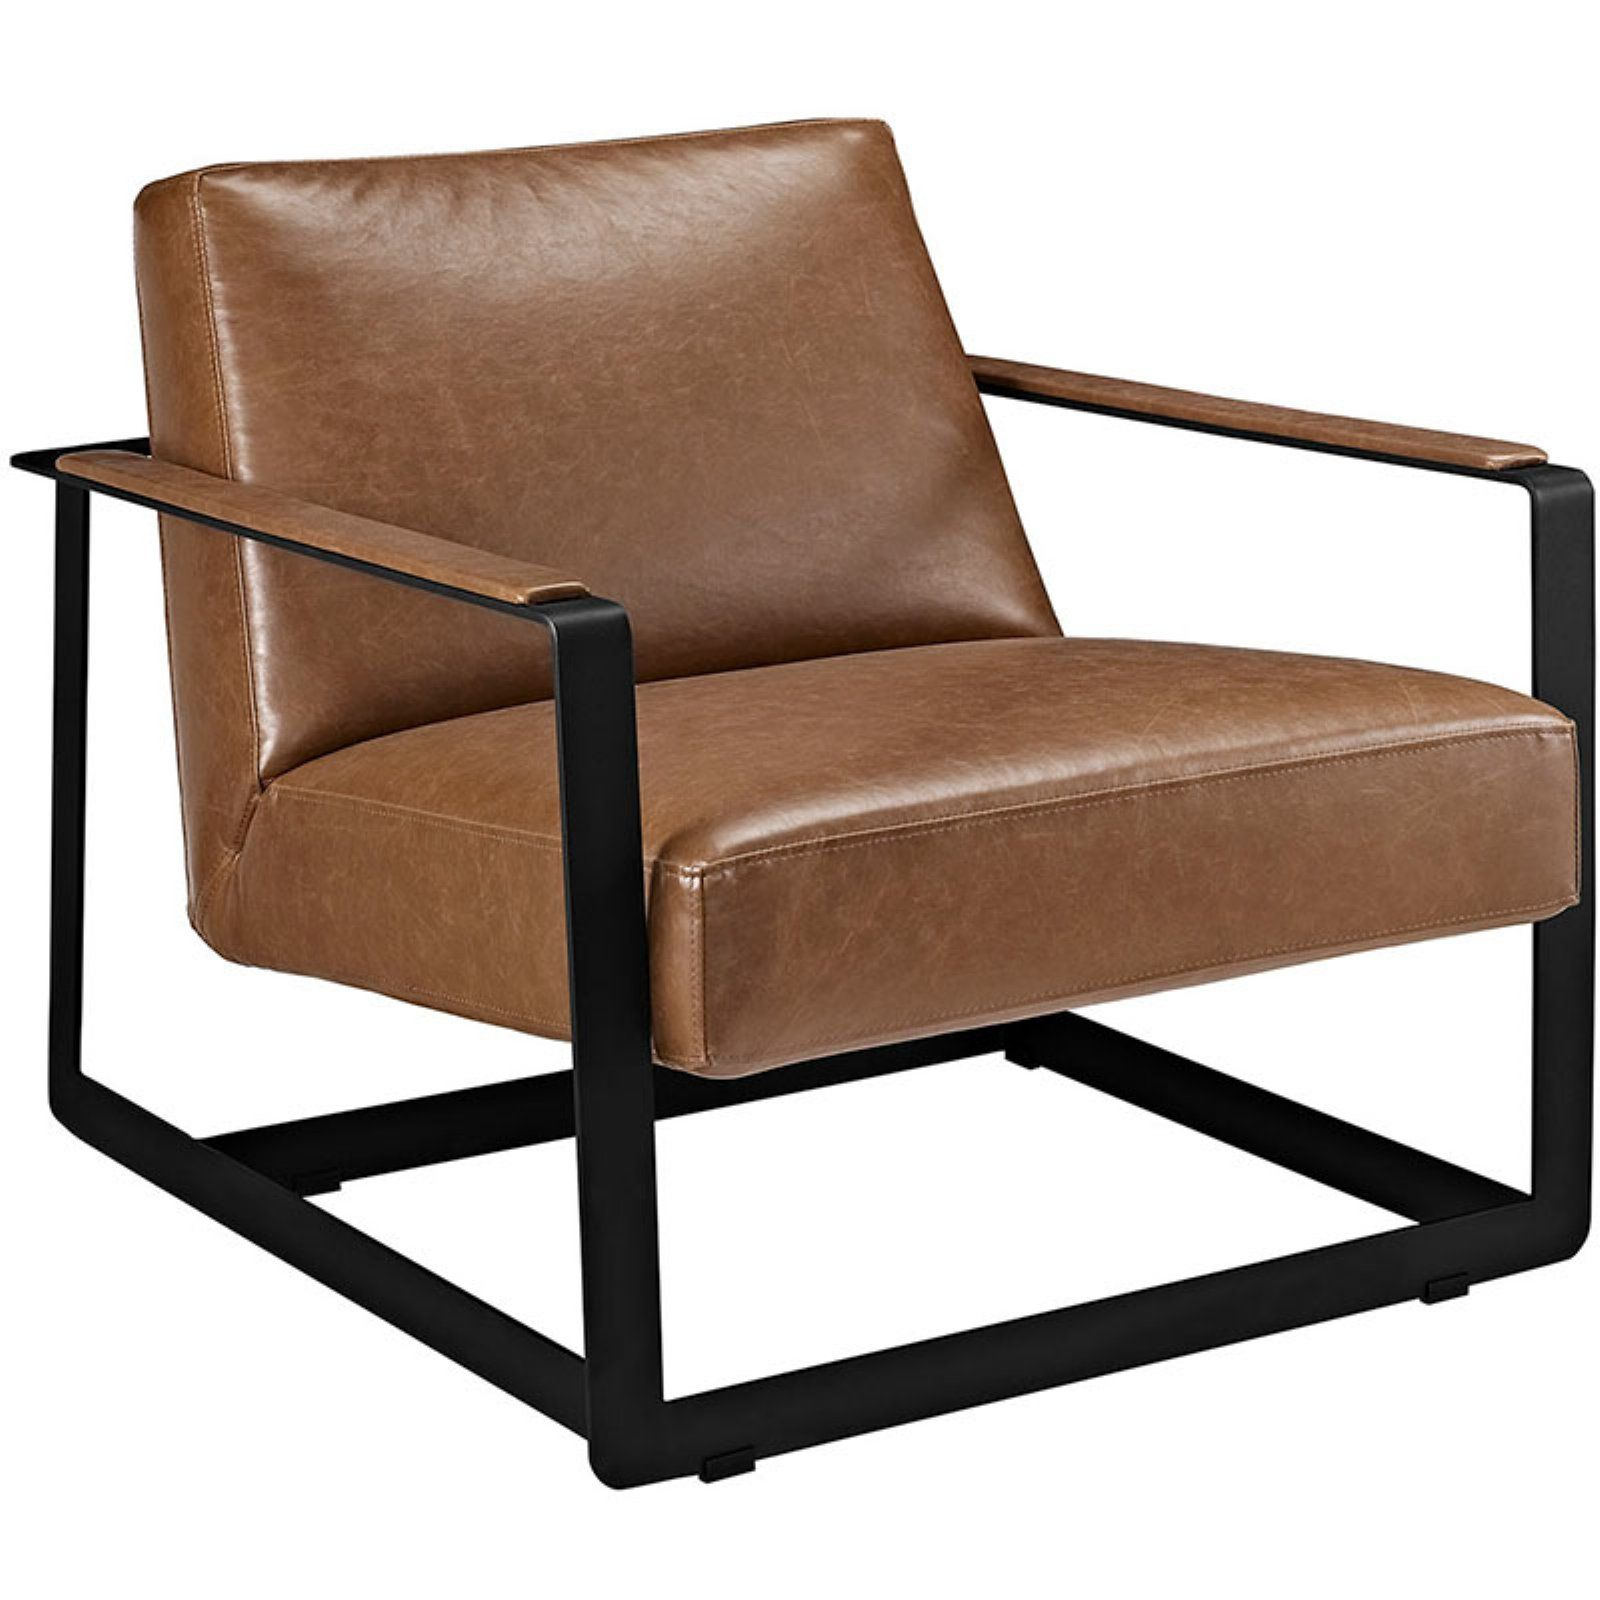 Upholstered Vinyl Accent Chair Walmart Com In 2020 Leather Accent Chair Modern Accent Chair Modern Lounge Chairs